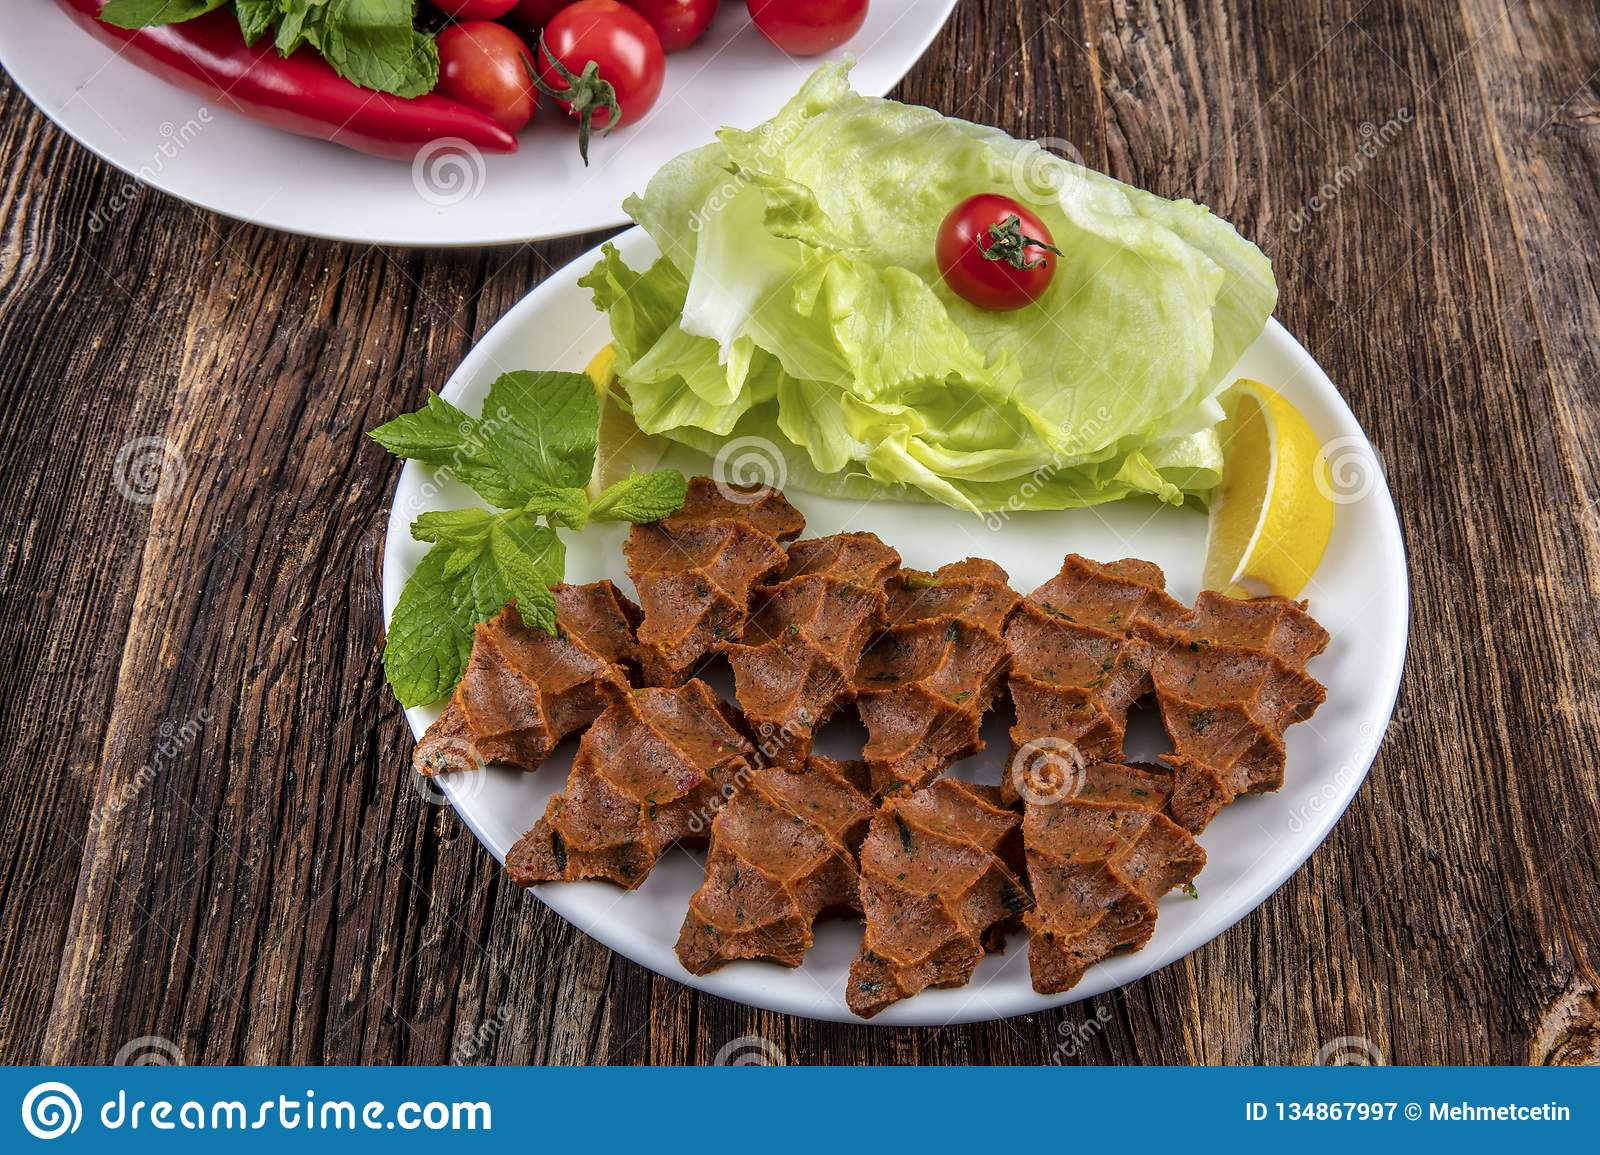 Cig kofte, a raw meat dish in Turkish and Armenian cuisines. Turkish cig means